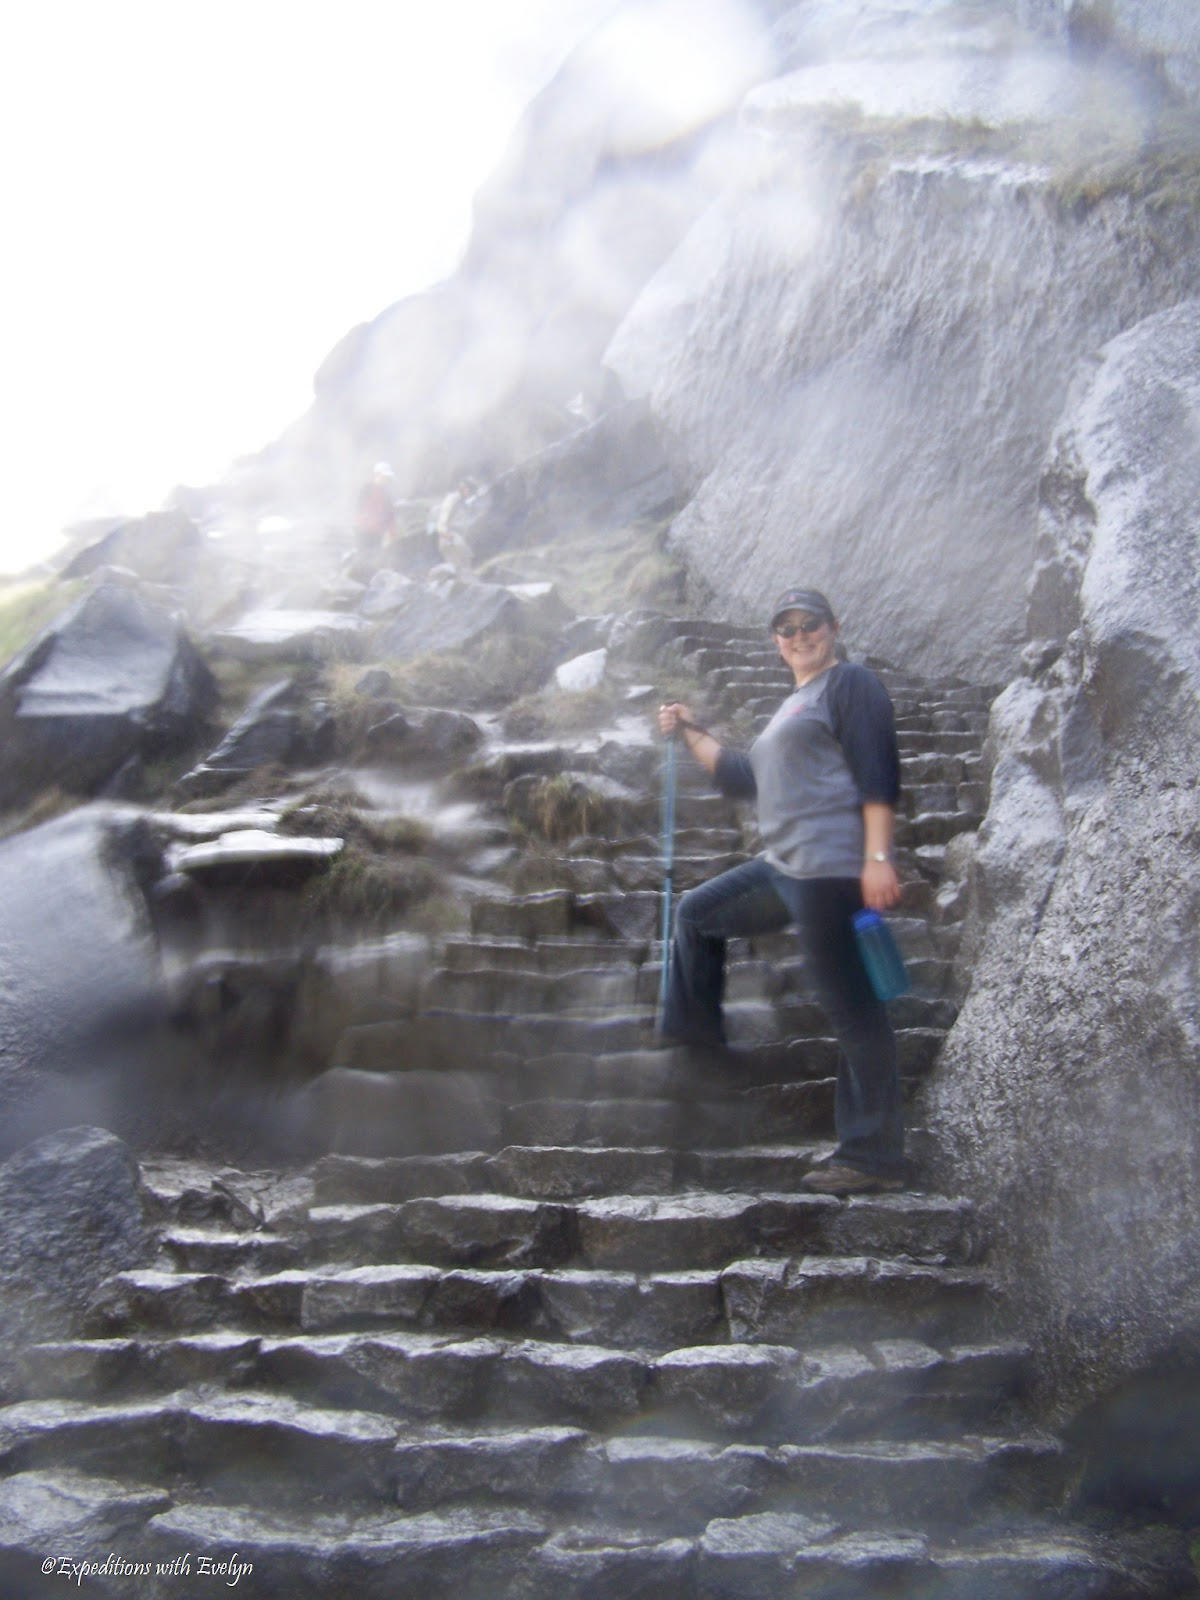 A hiker stands on wet granite steps supported by a trekking pole.  Mist from a waterfall speckles the camera lens.